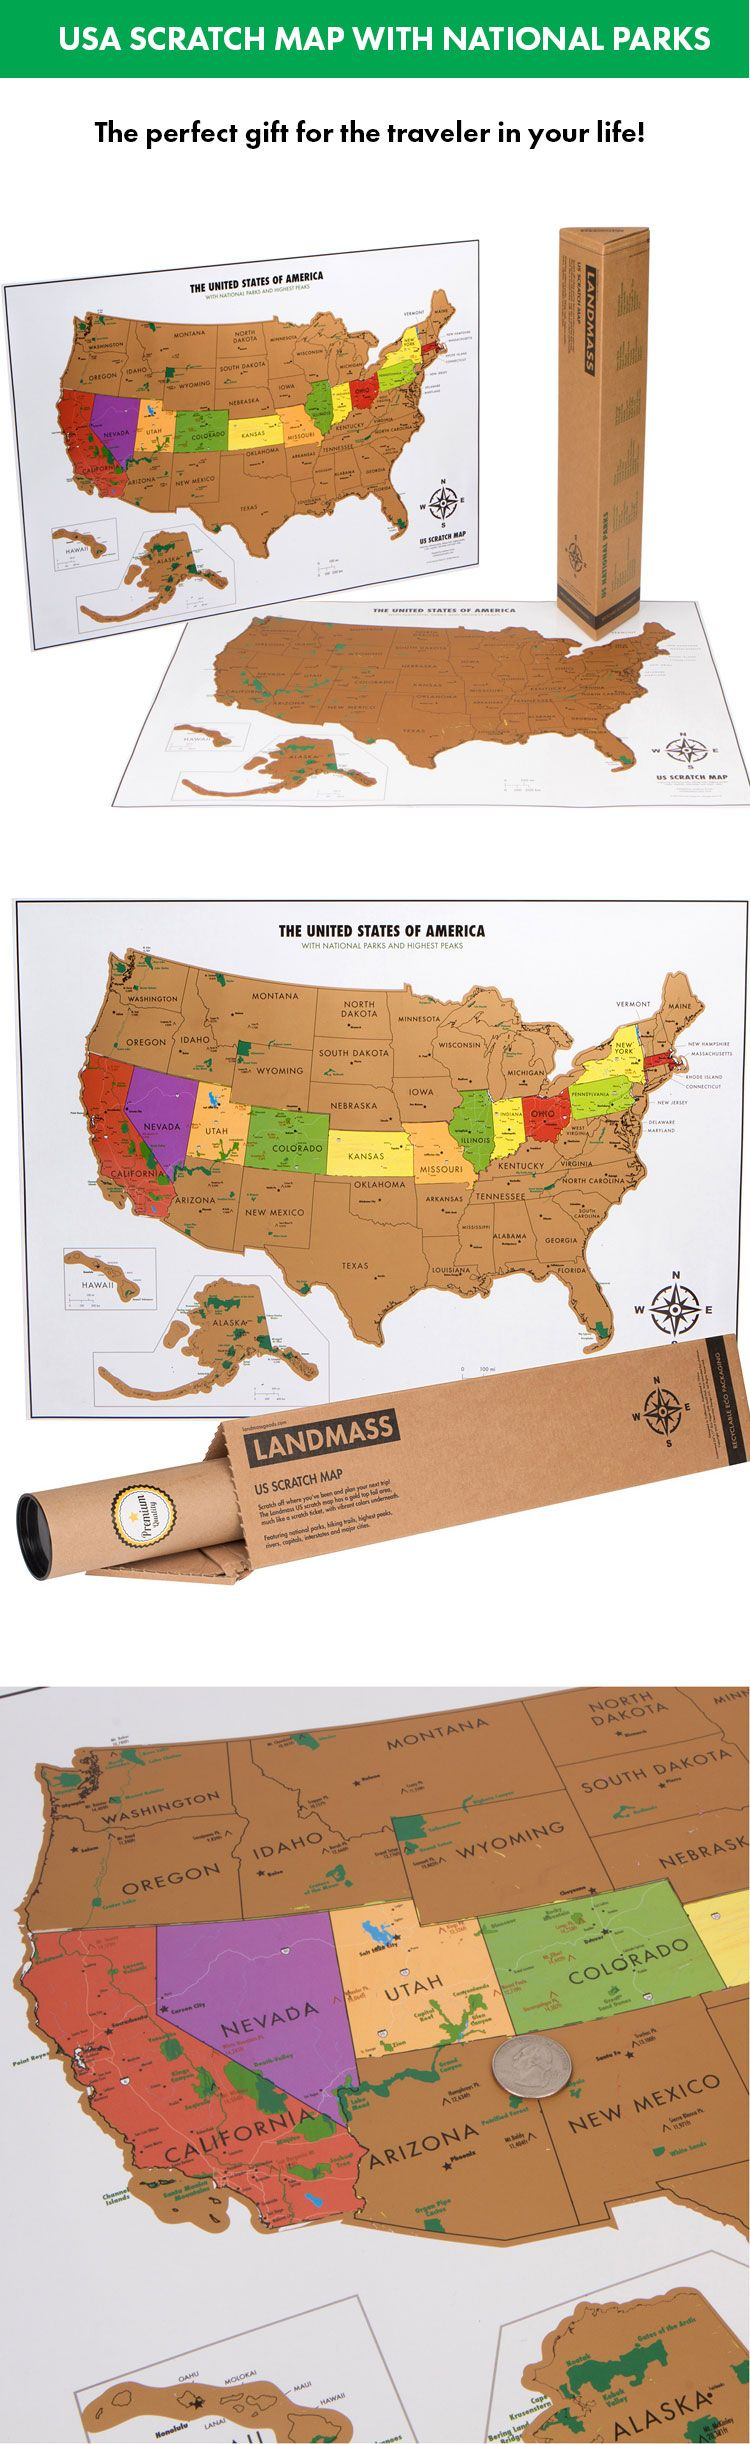 Scratch off usa map with national parks travel tracker map scratch off usa map with national parks travel tracker map sciox Gallery